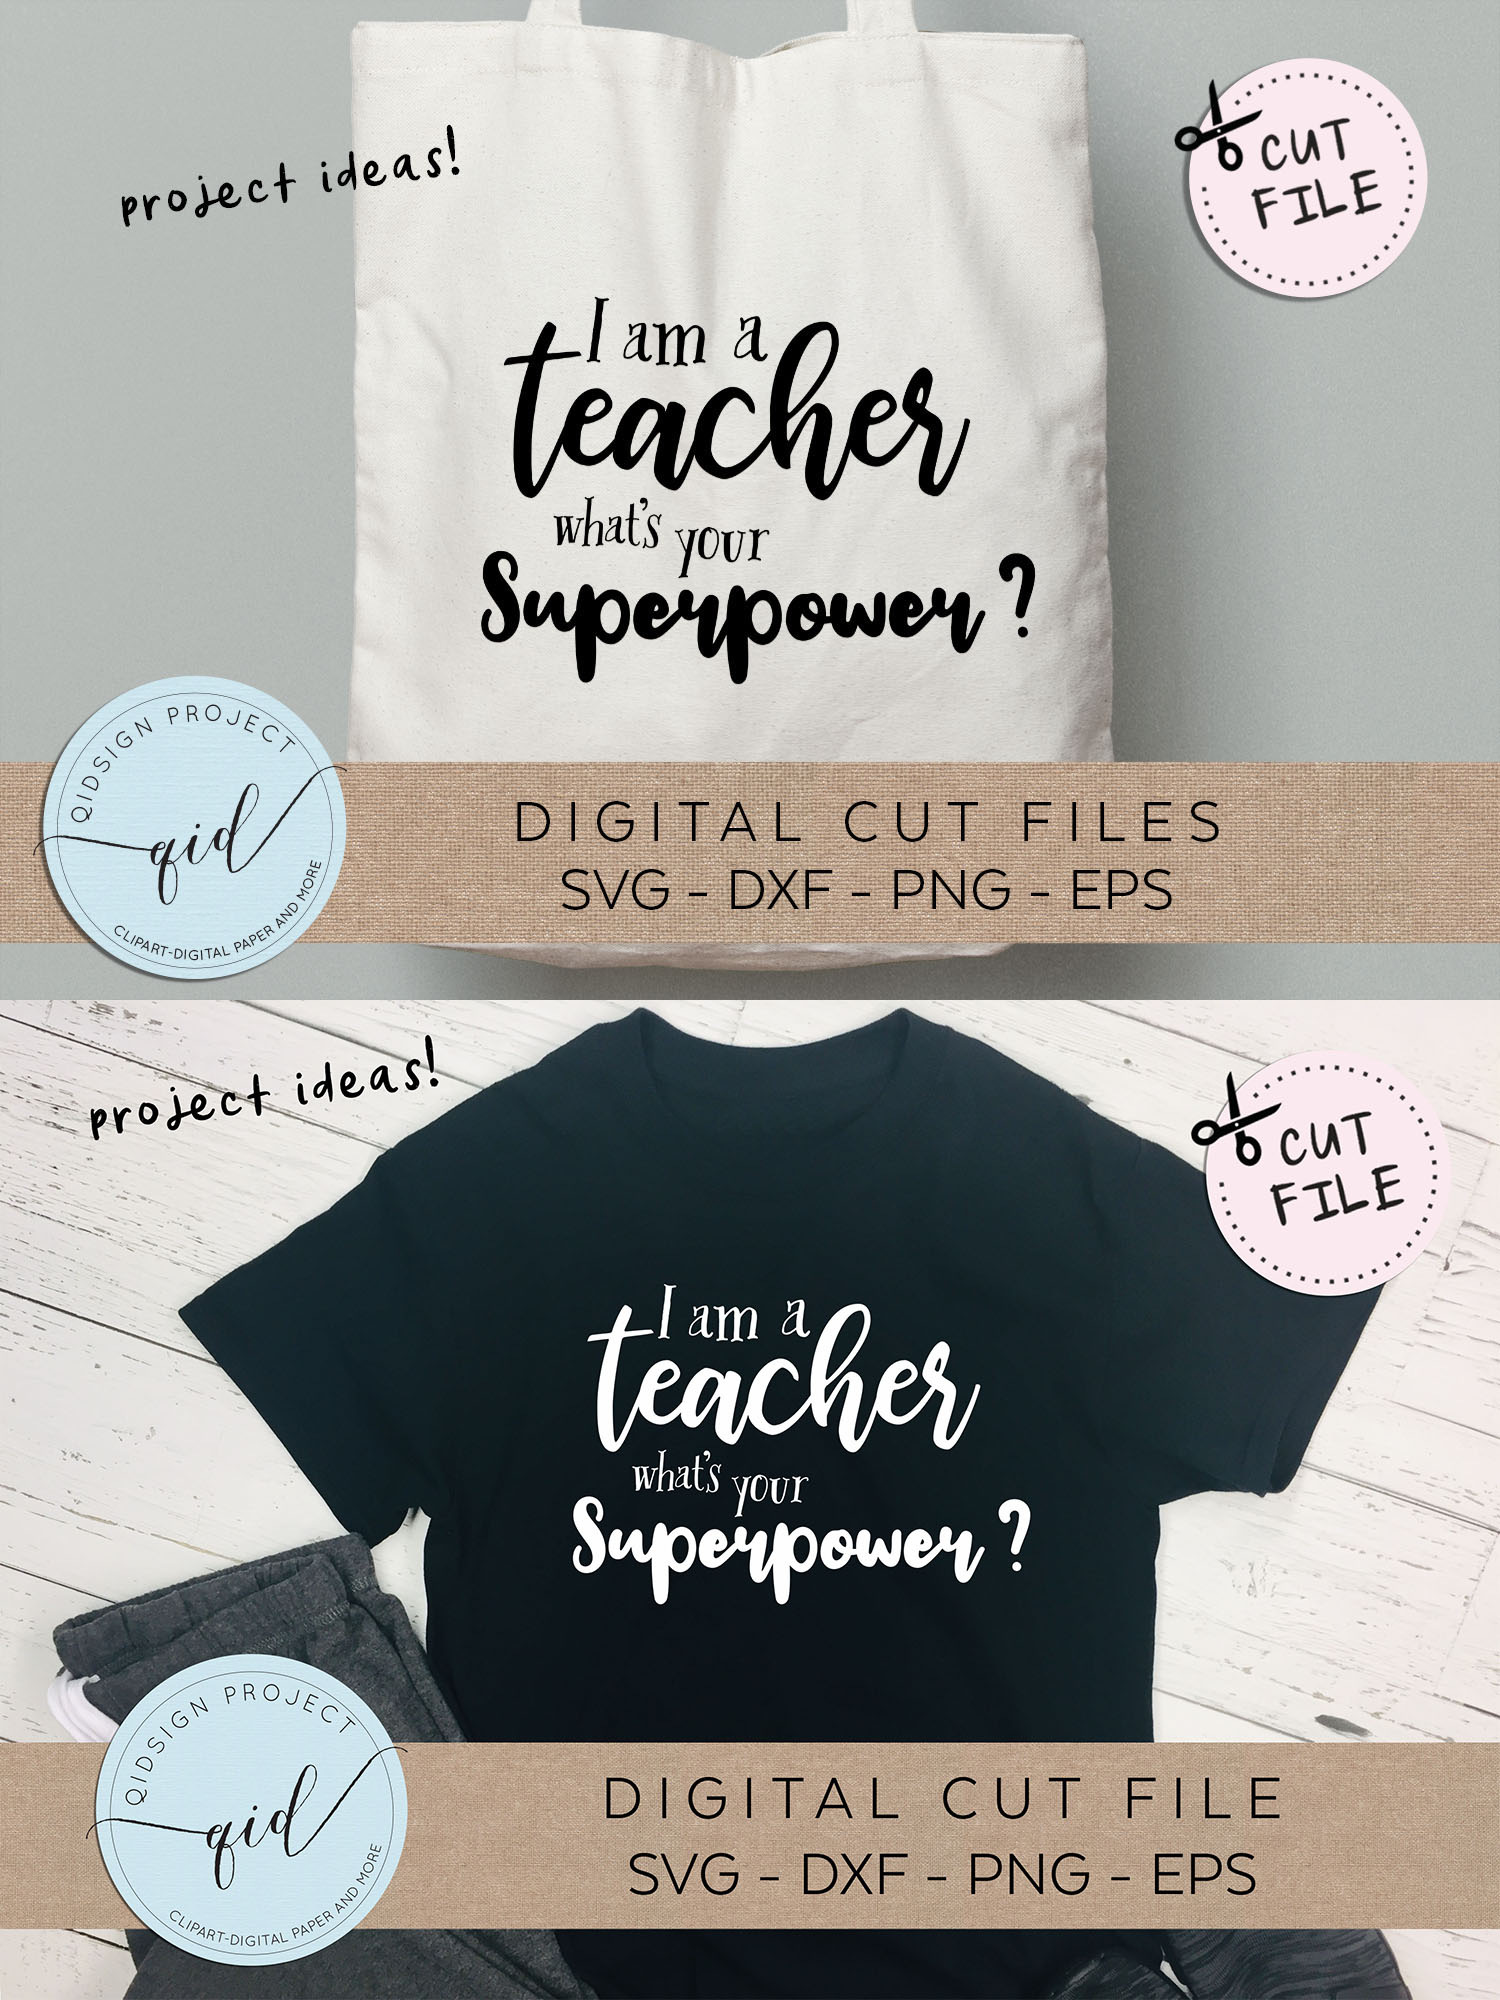 I am a teacher what's your superpower SVG DXF PNG EPS example image 3